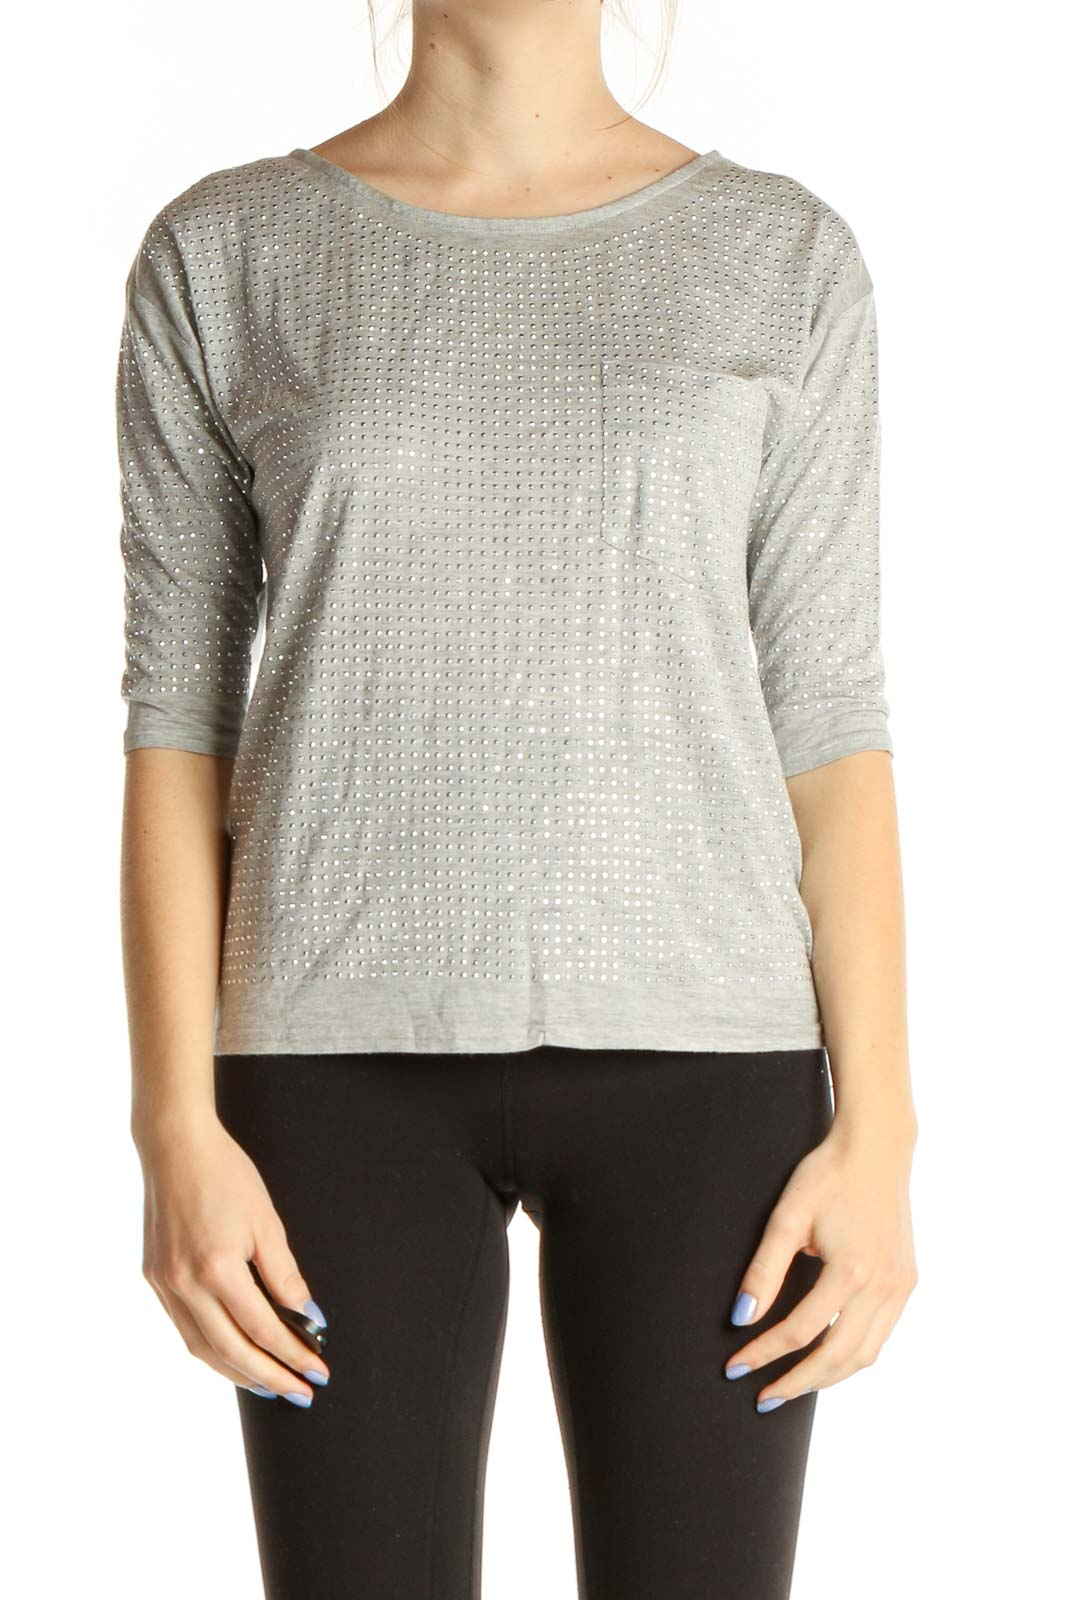 Gray Textured All Day Wear T-Shirt Front